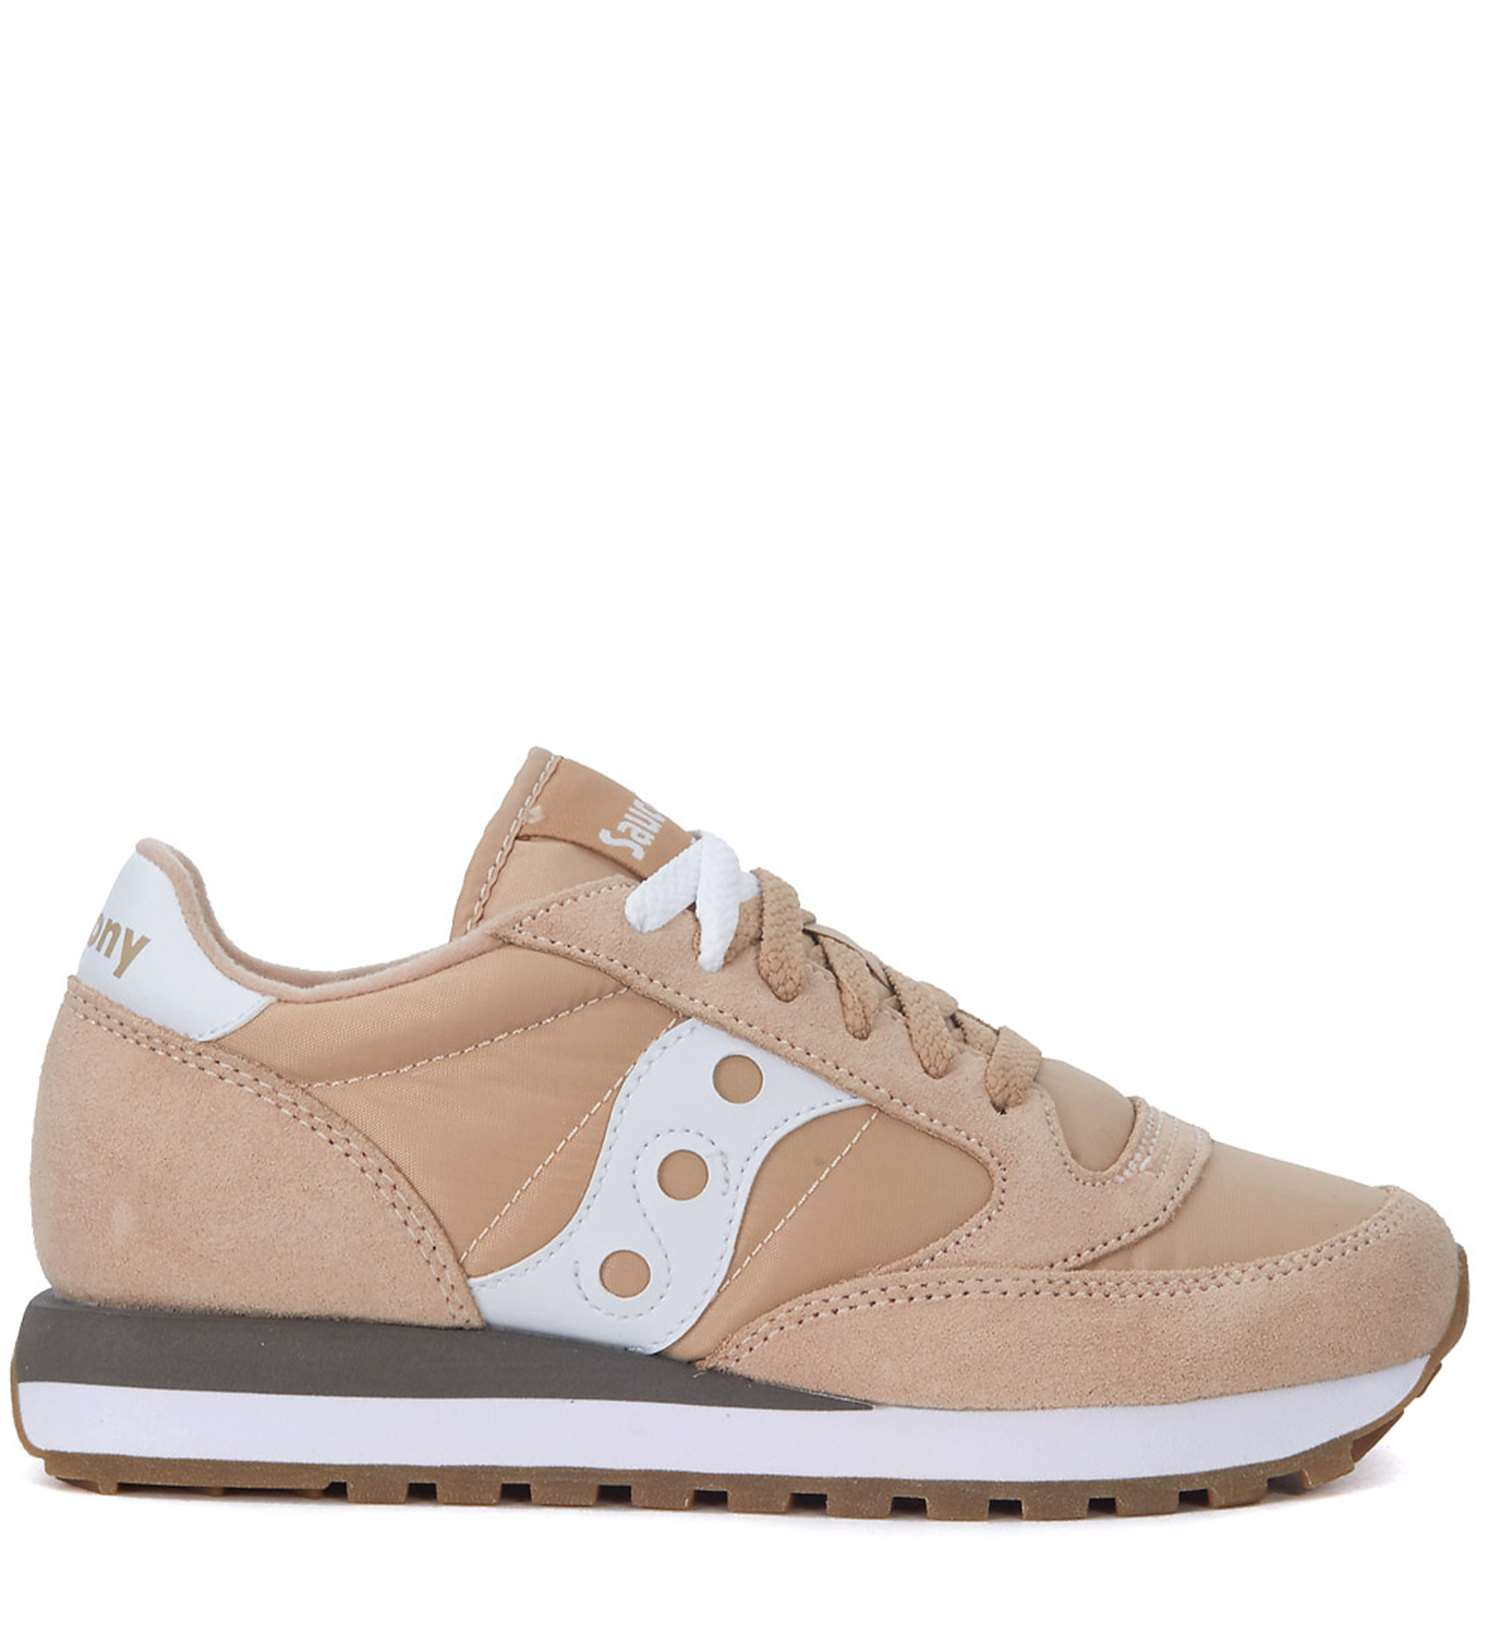 Alta qualit Sneakers Donna Saucony S1044440 Primavera/Estate vendita